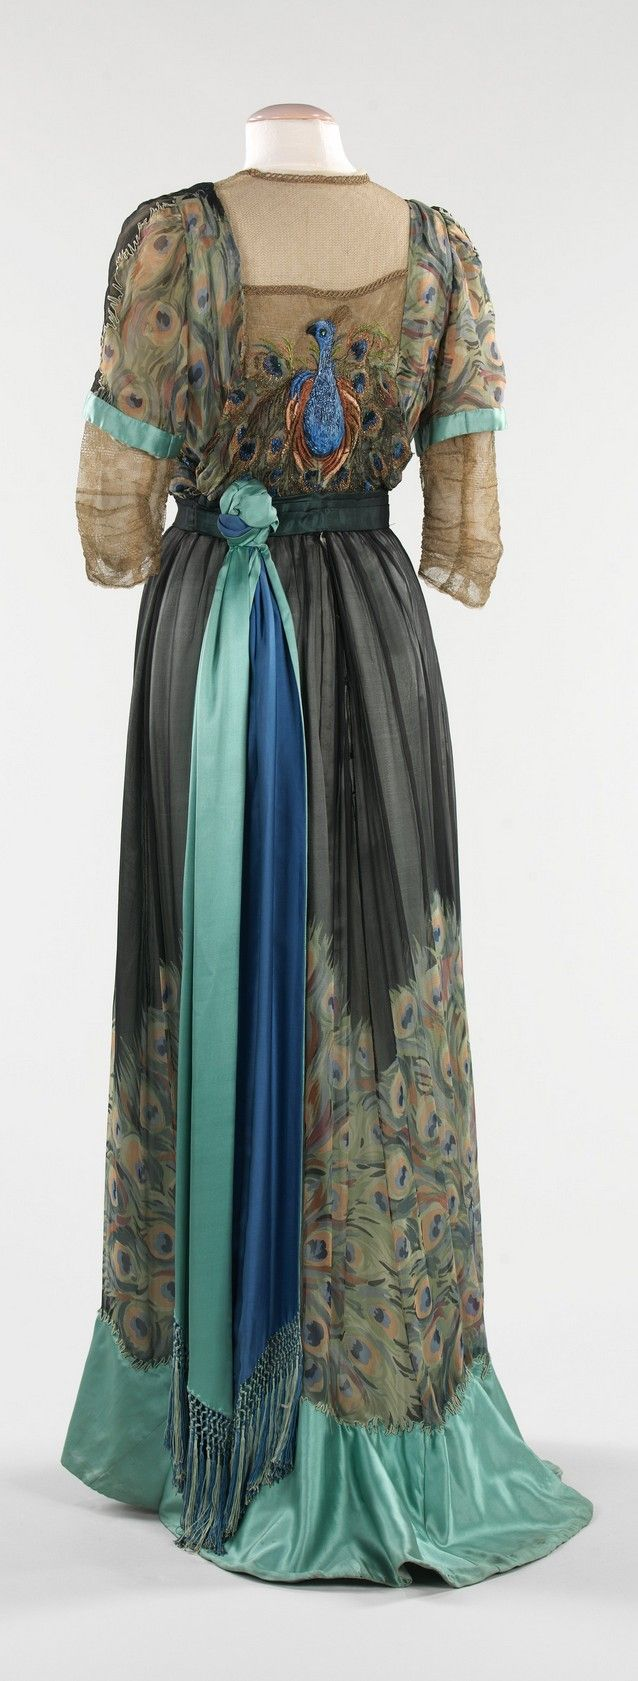 French Dress - back - 1910 - by Weeks  (French) - Silk, metal - The Metropolitan Museum of Art - Style: Art Nouveau - @~ Mlle: